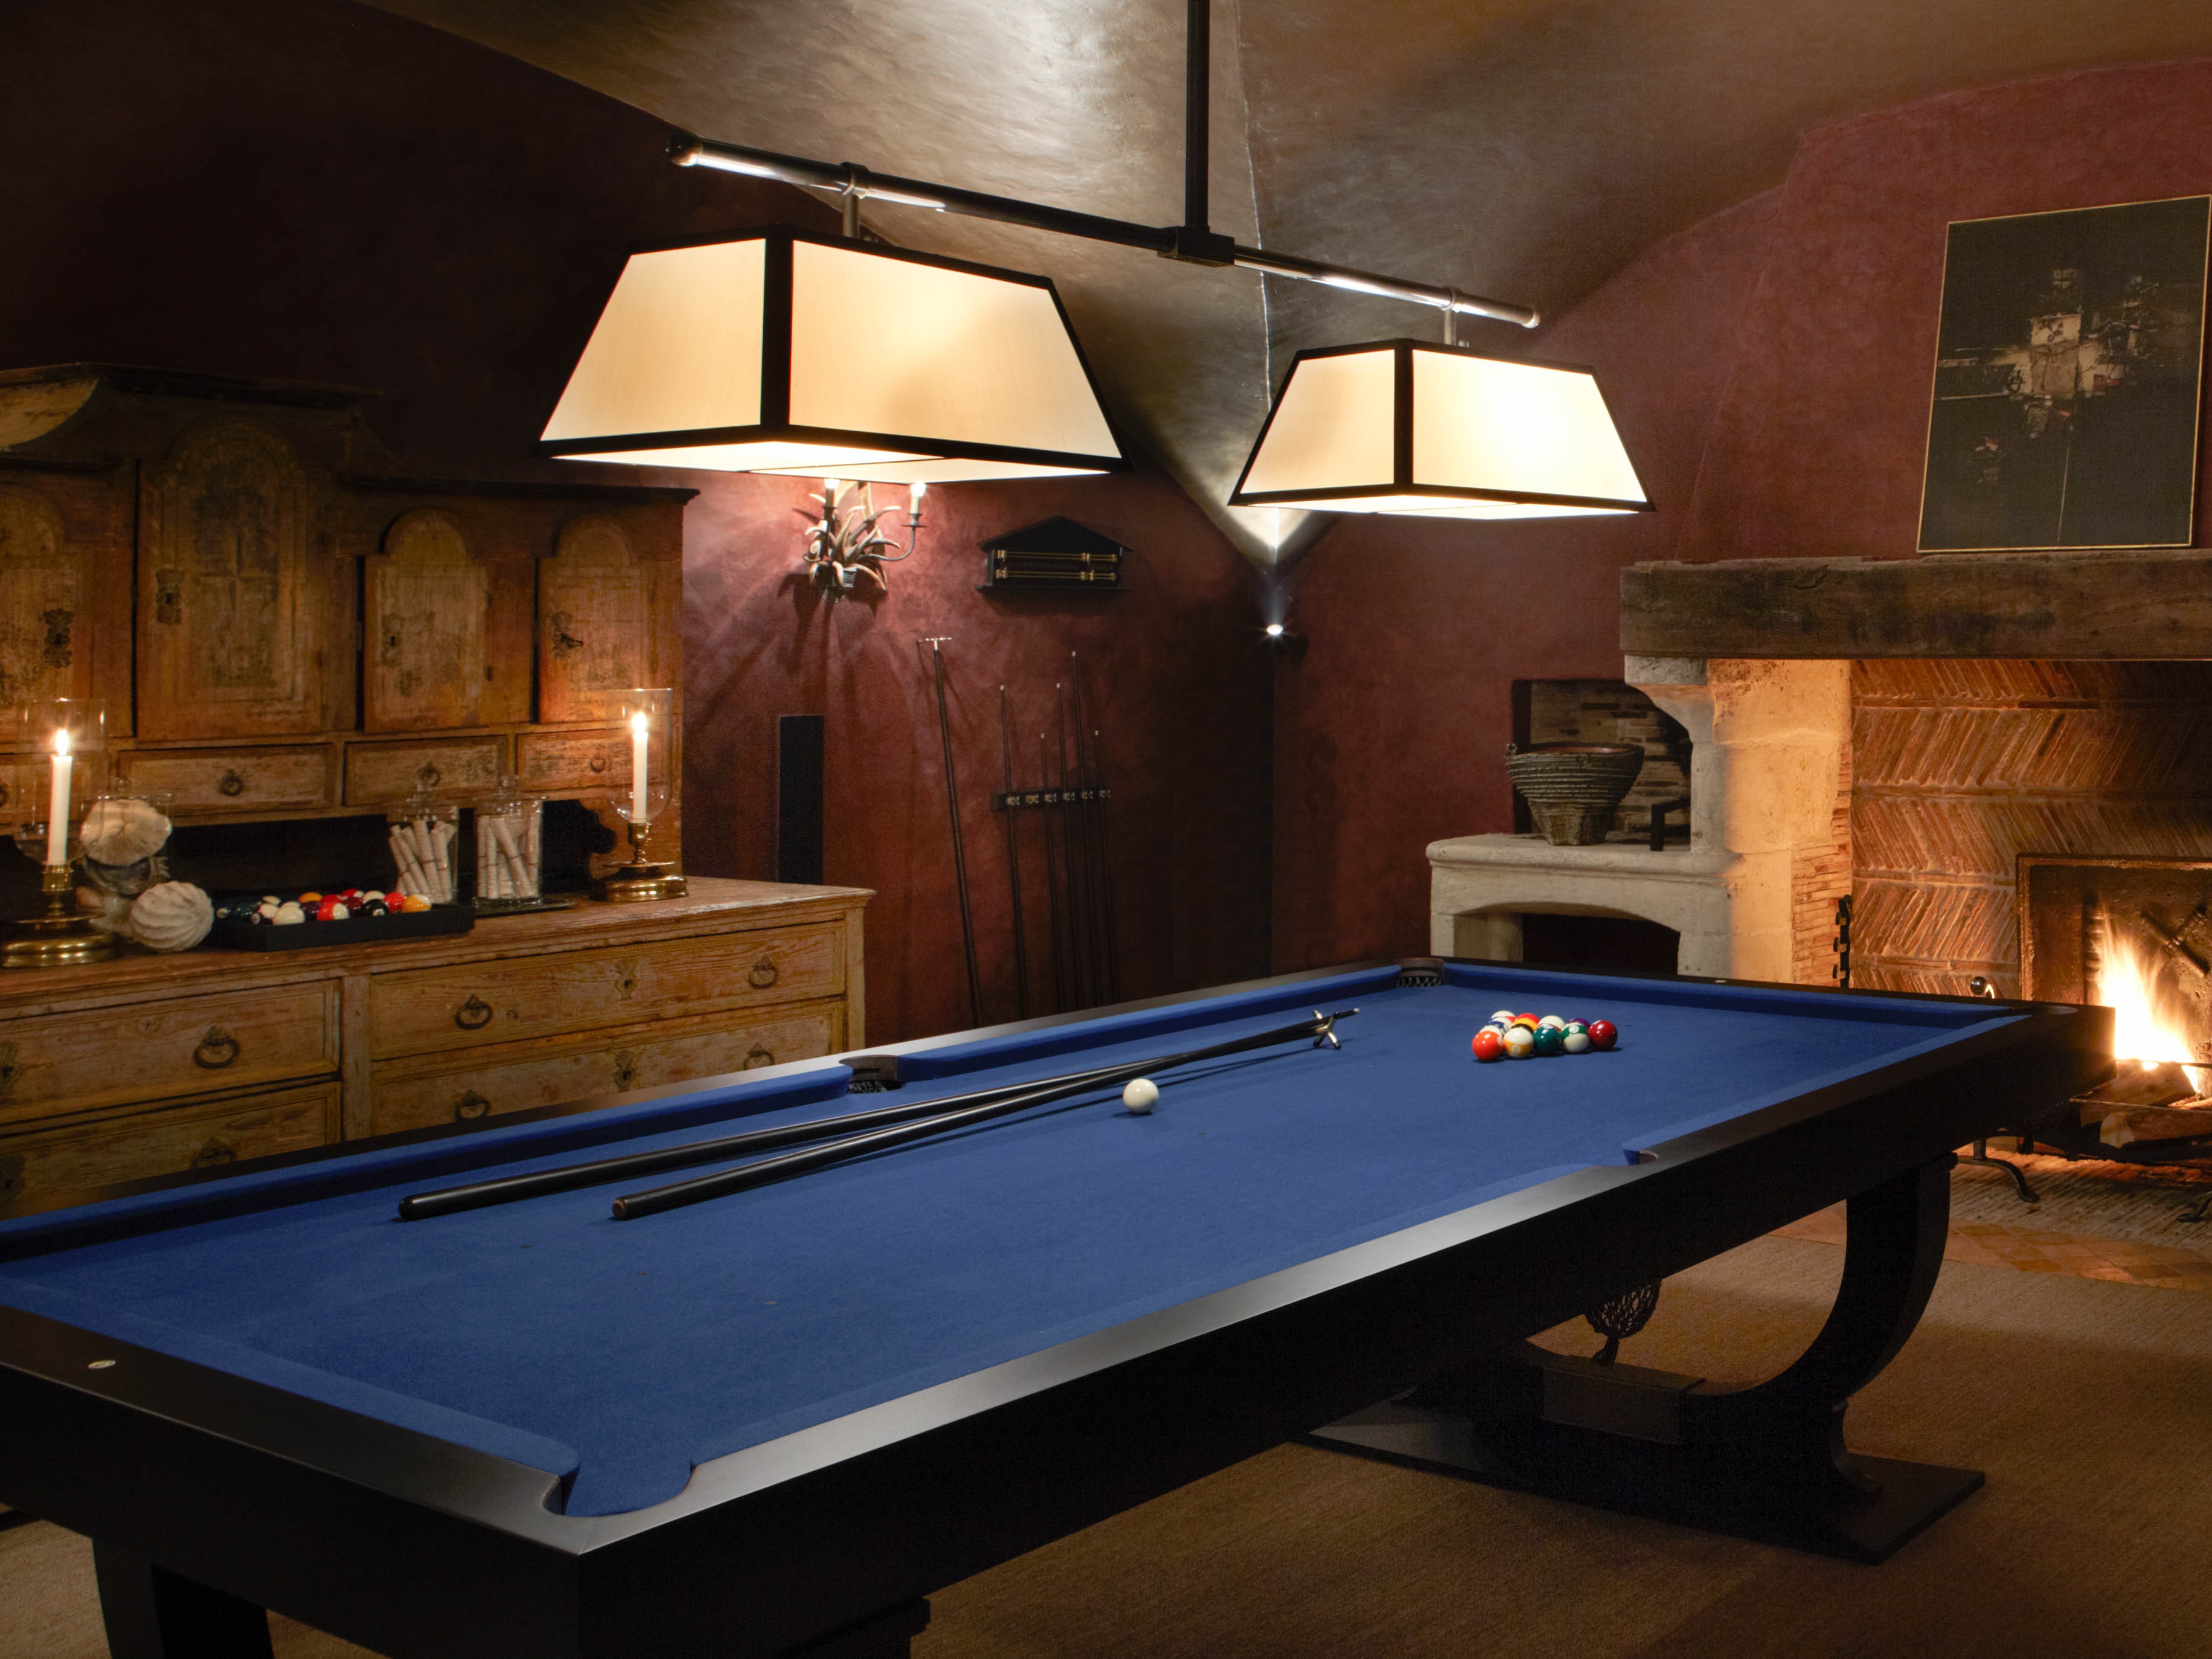 Wondrous Design Custom Pool Table Snooker Table Dining Table Download Free Architecture Designs Scobabritishbridgeorg